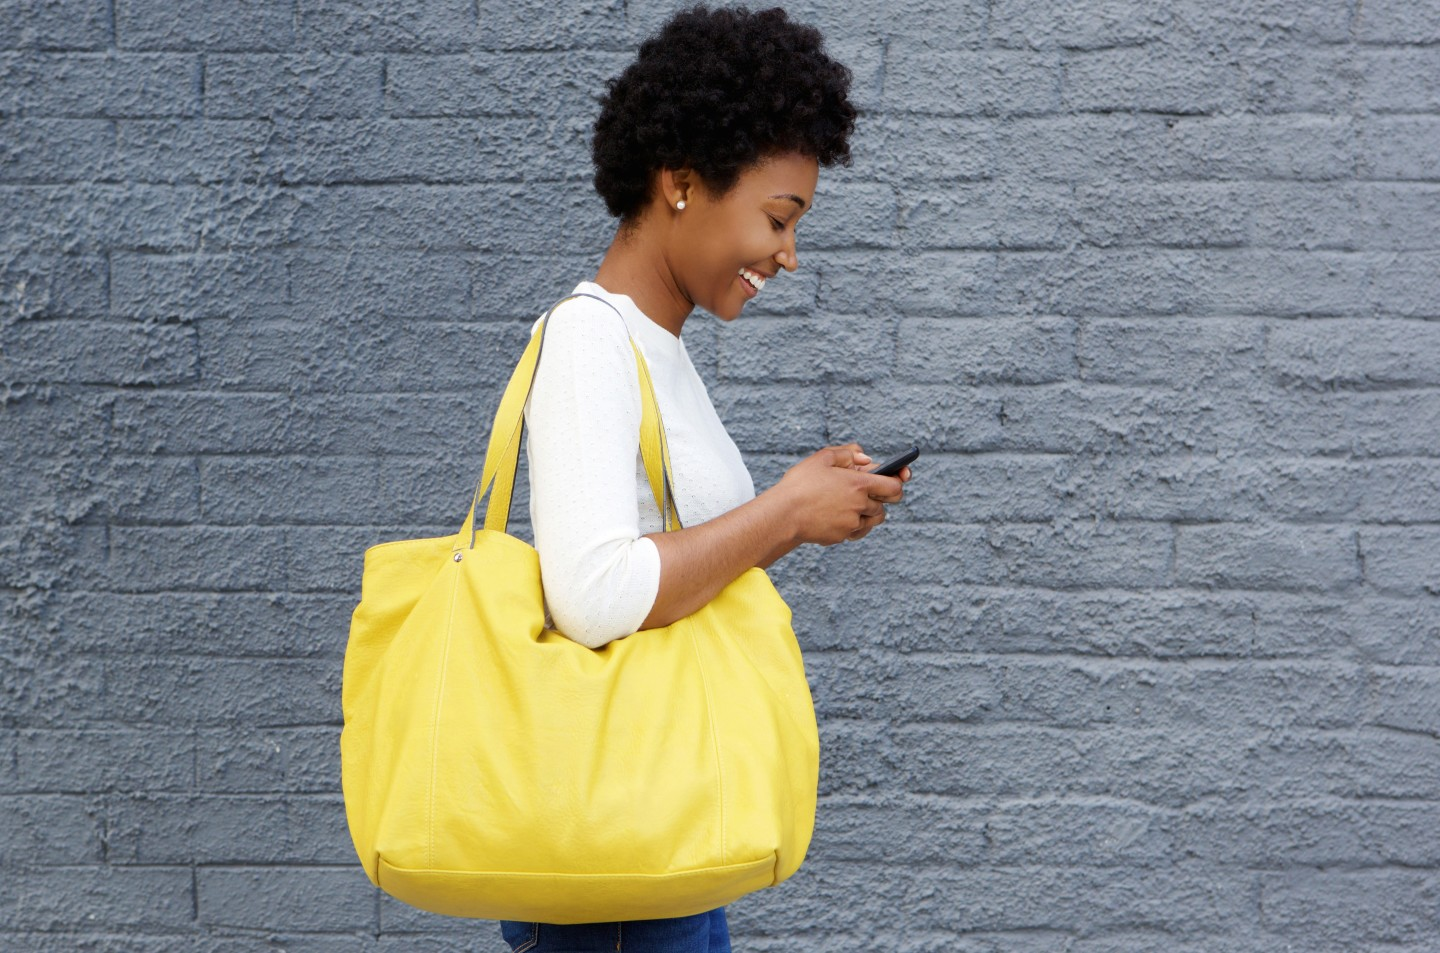 woman-on-phone-yellow-bag